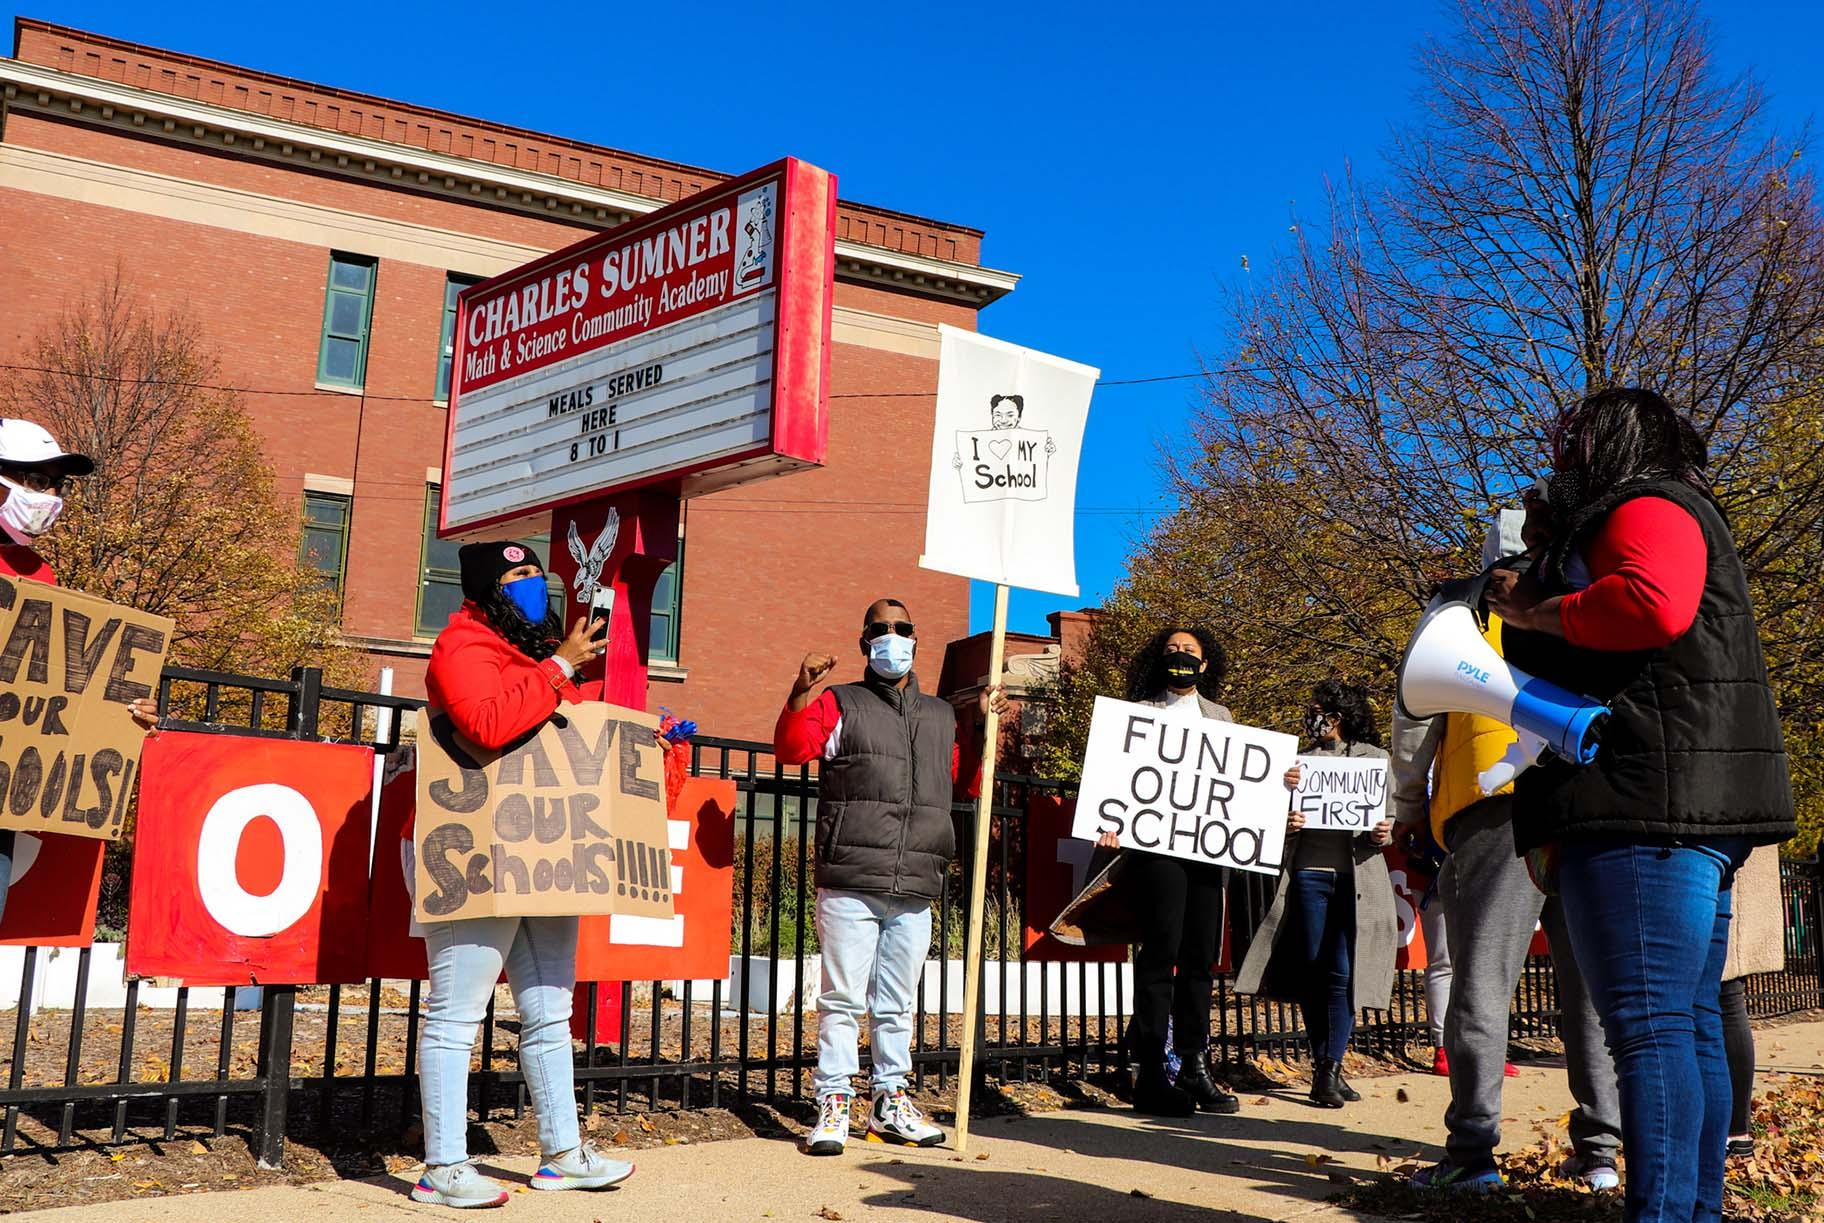 Protesters stand outside Charles Sumner Math and Science Community Academy on Saturday, Oct. 31, 2020. (Grace Del Vecchio / WTTW News)